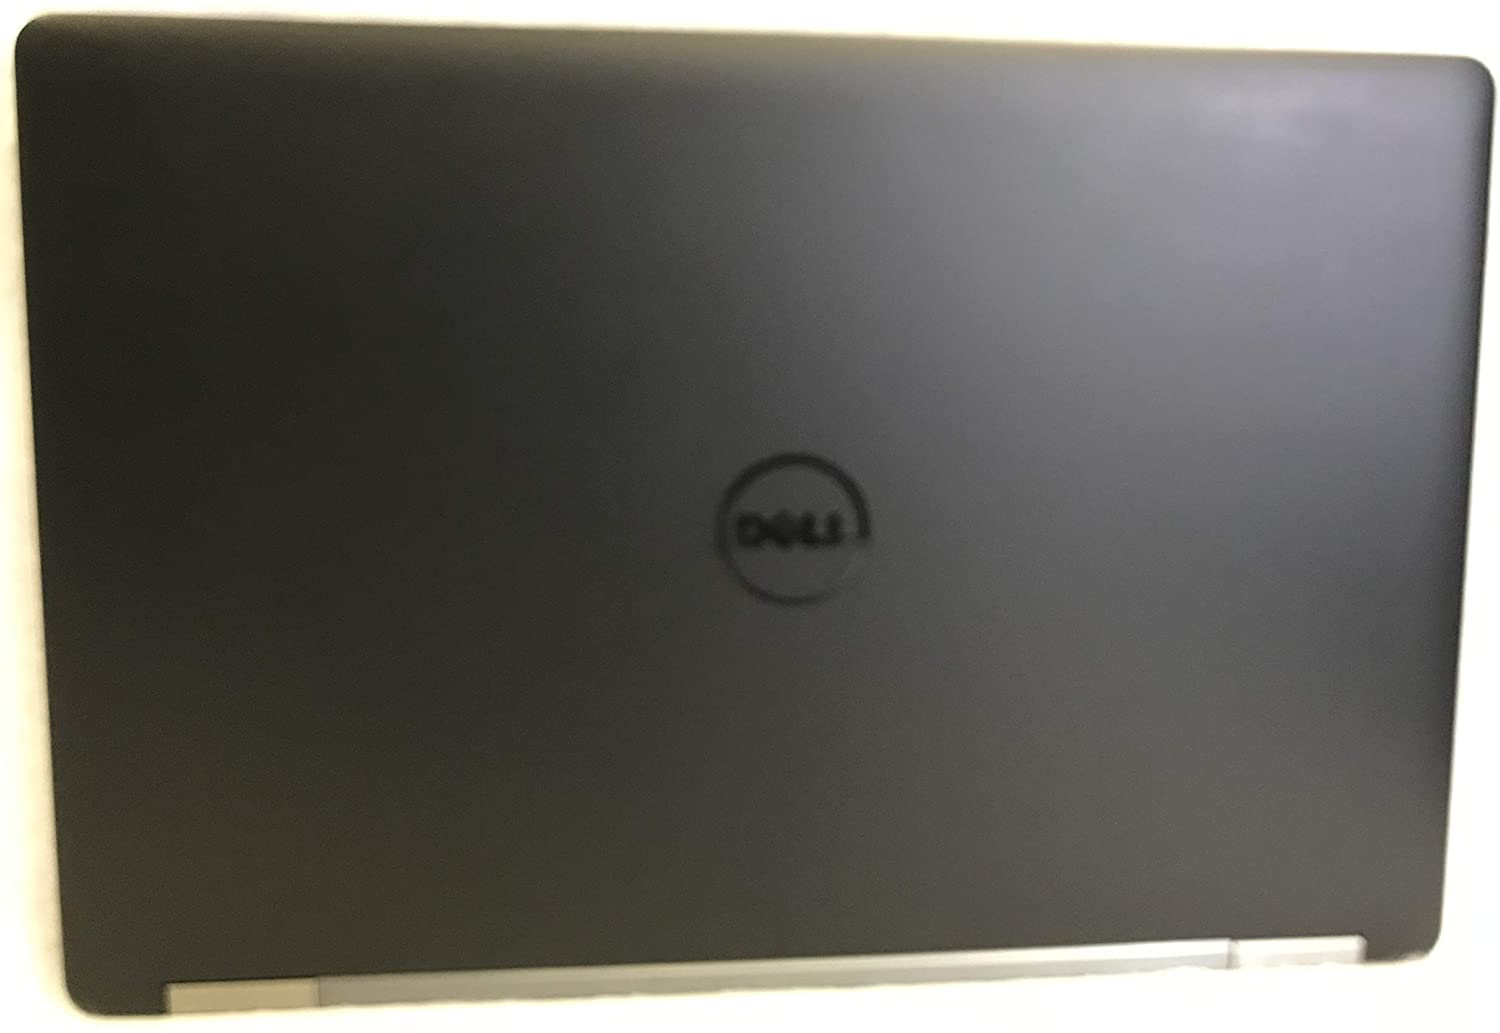 Dell Latitude E5570 Intel Core i5-6300U X2 2.4GHz 8GB 256GB SSD 15.6'' Win10,Black